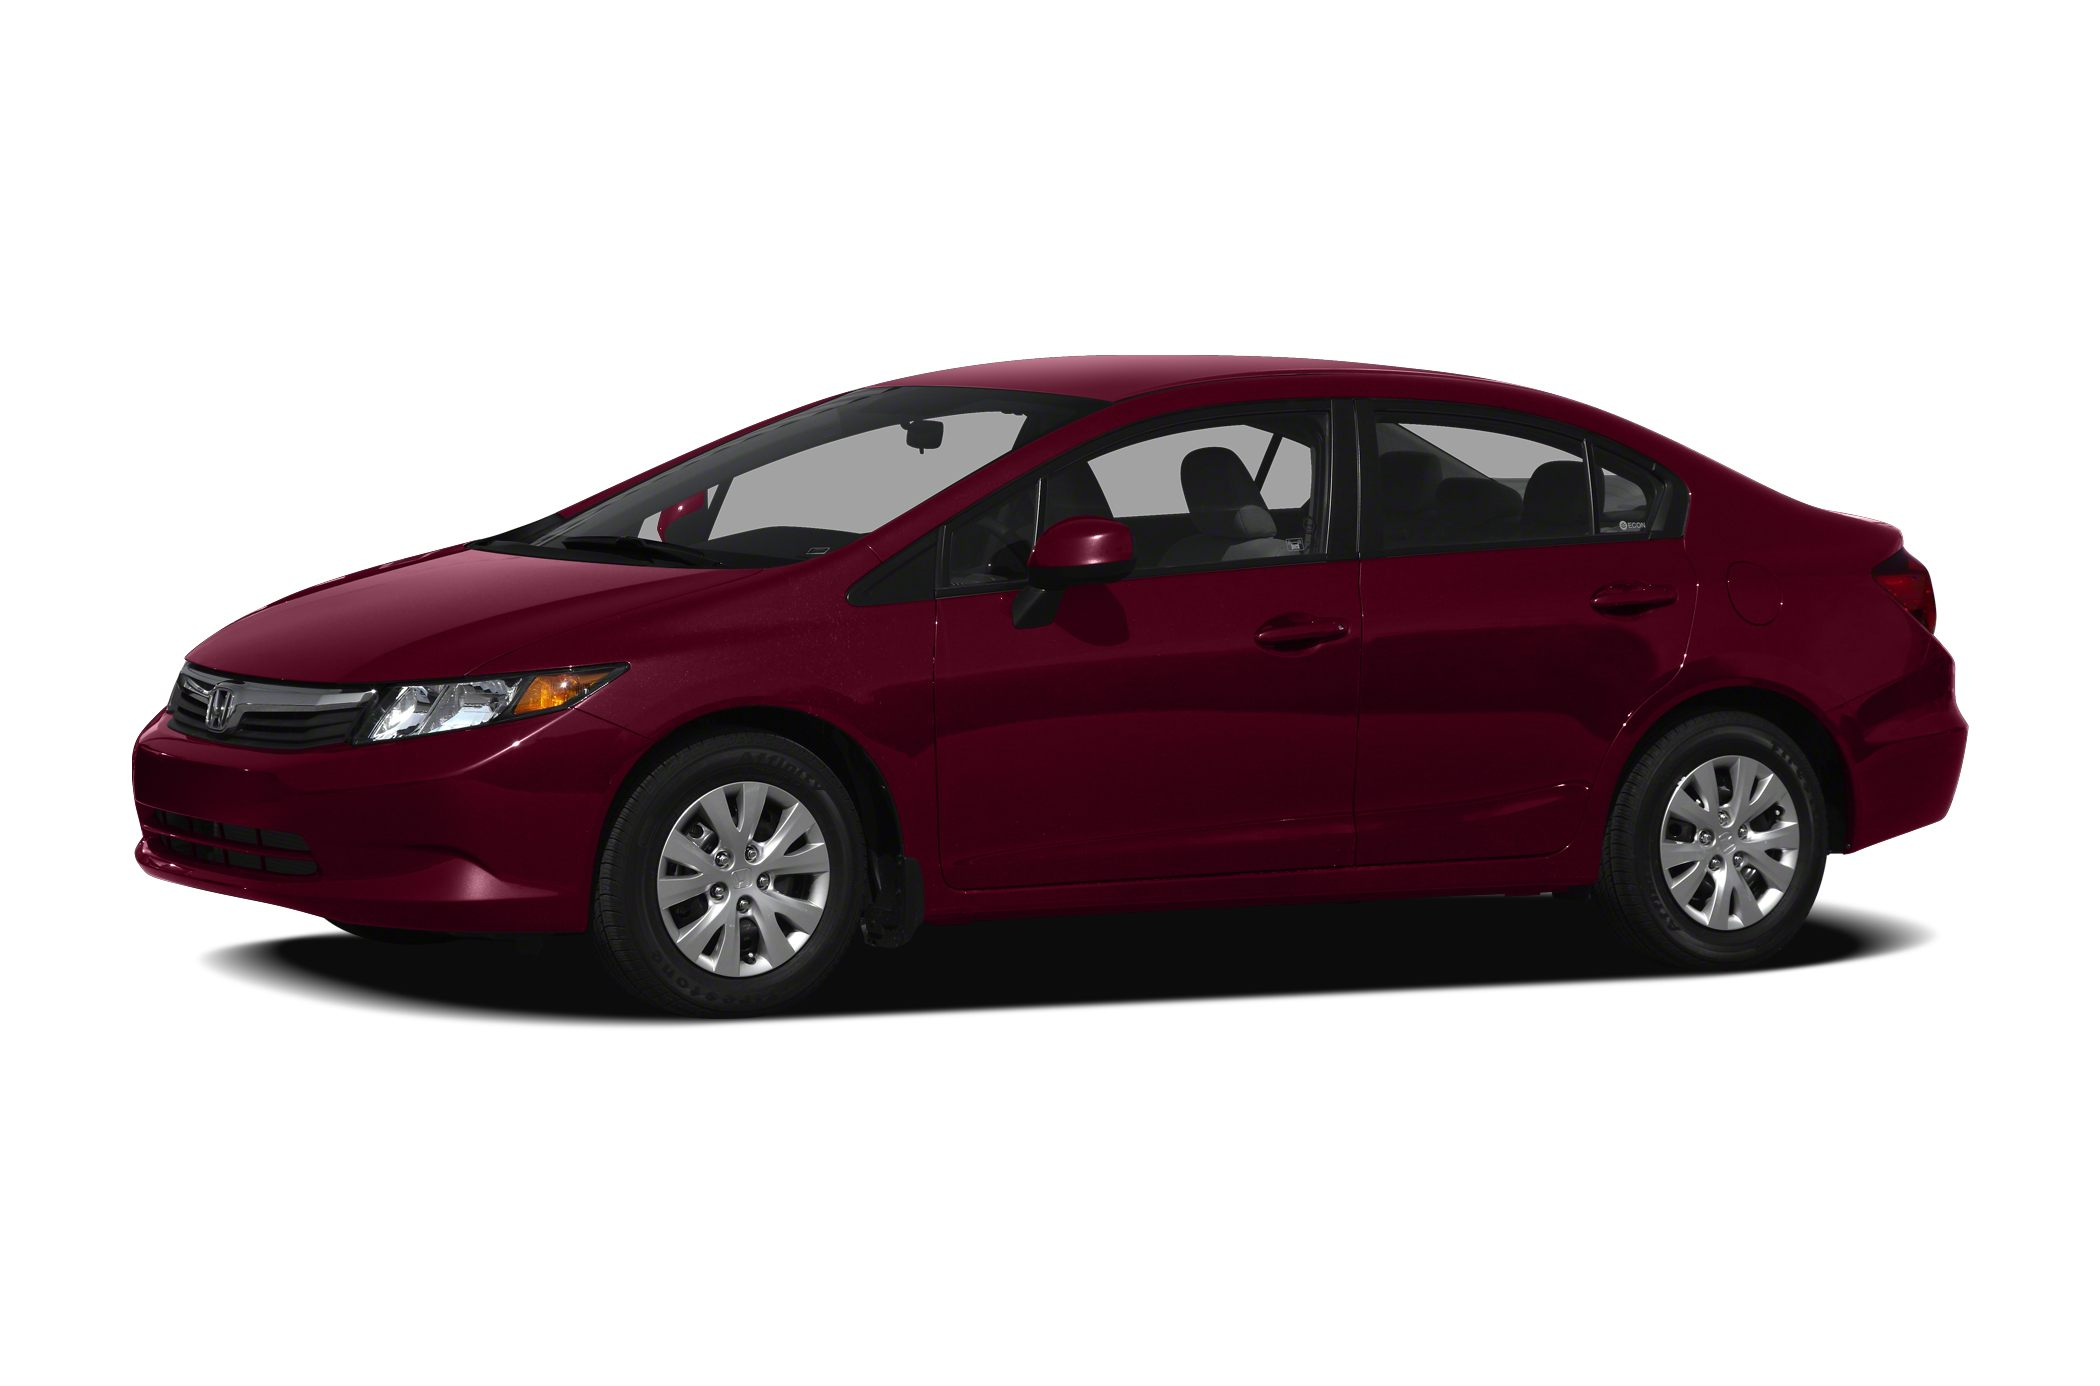 2012 Honda Civic EX-L Coupe for sale in Decatur for $17,000 with 27,077 miles.